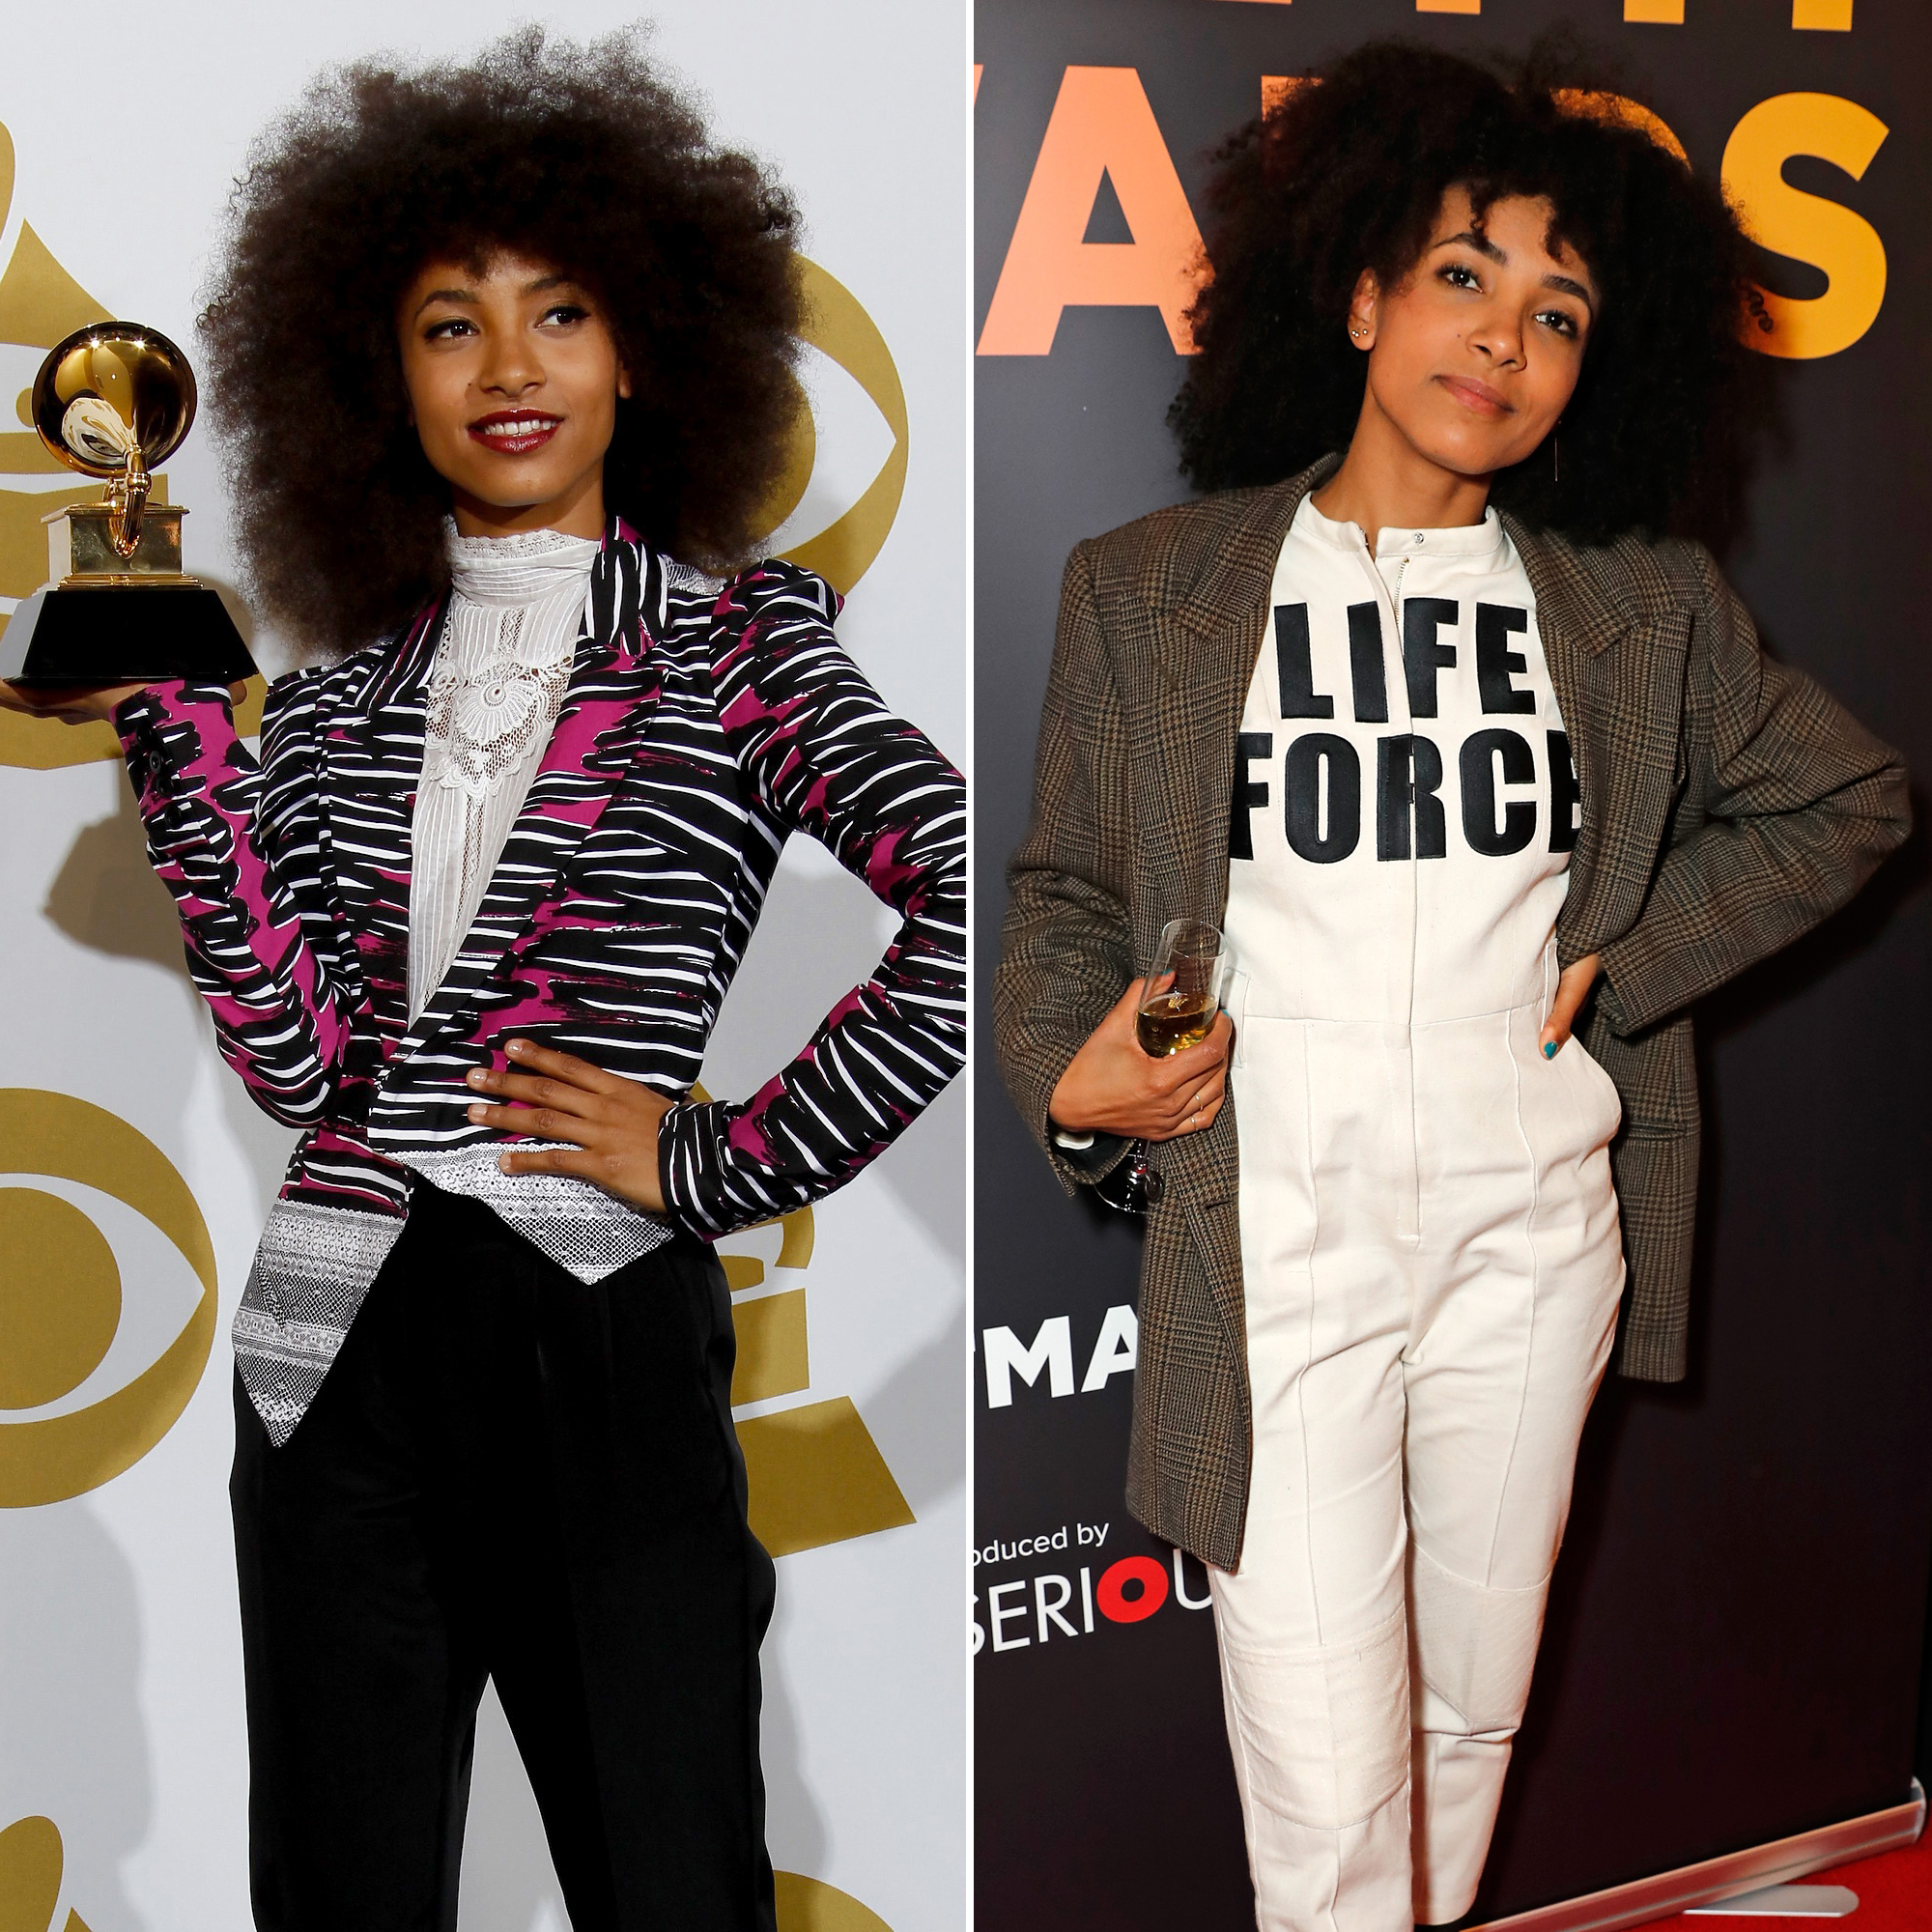 Best New Artist Grammy Winners Where Are They Now - Who She Beat: Justin Bieber, Drake, Florence and the Machine, Mumford & Sons Where Is She Now: Spalding made history in 2011 as the first jazz artist to win Best New Artist. Following her surprise win, she released four more solo albums, bringing her total to seven albums as of February 2019, and won three more Grammys.